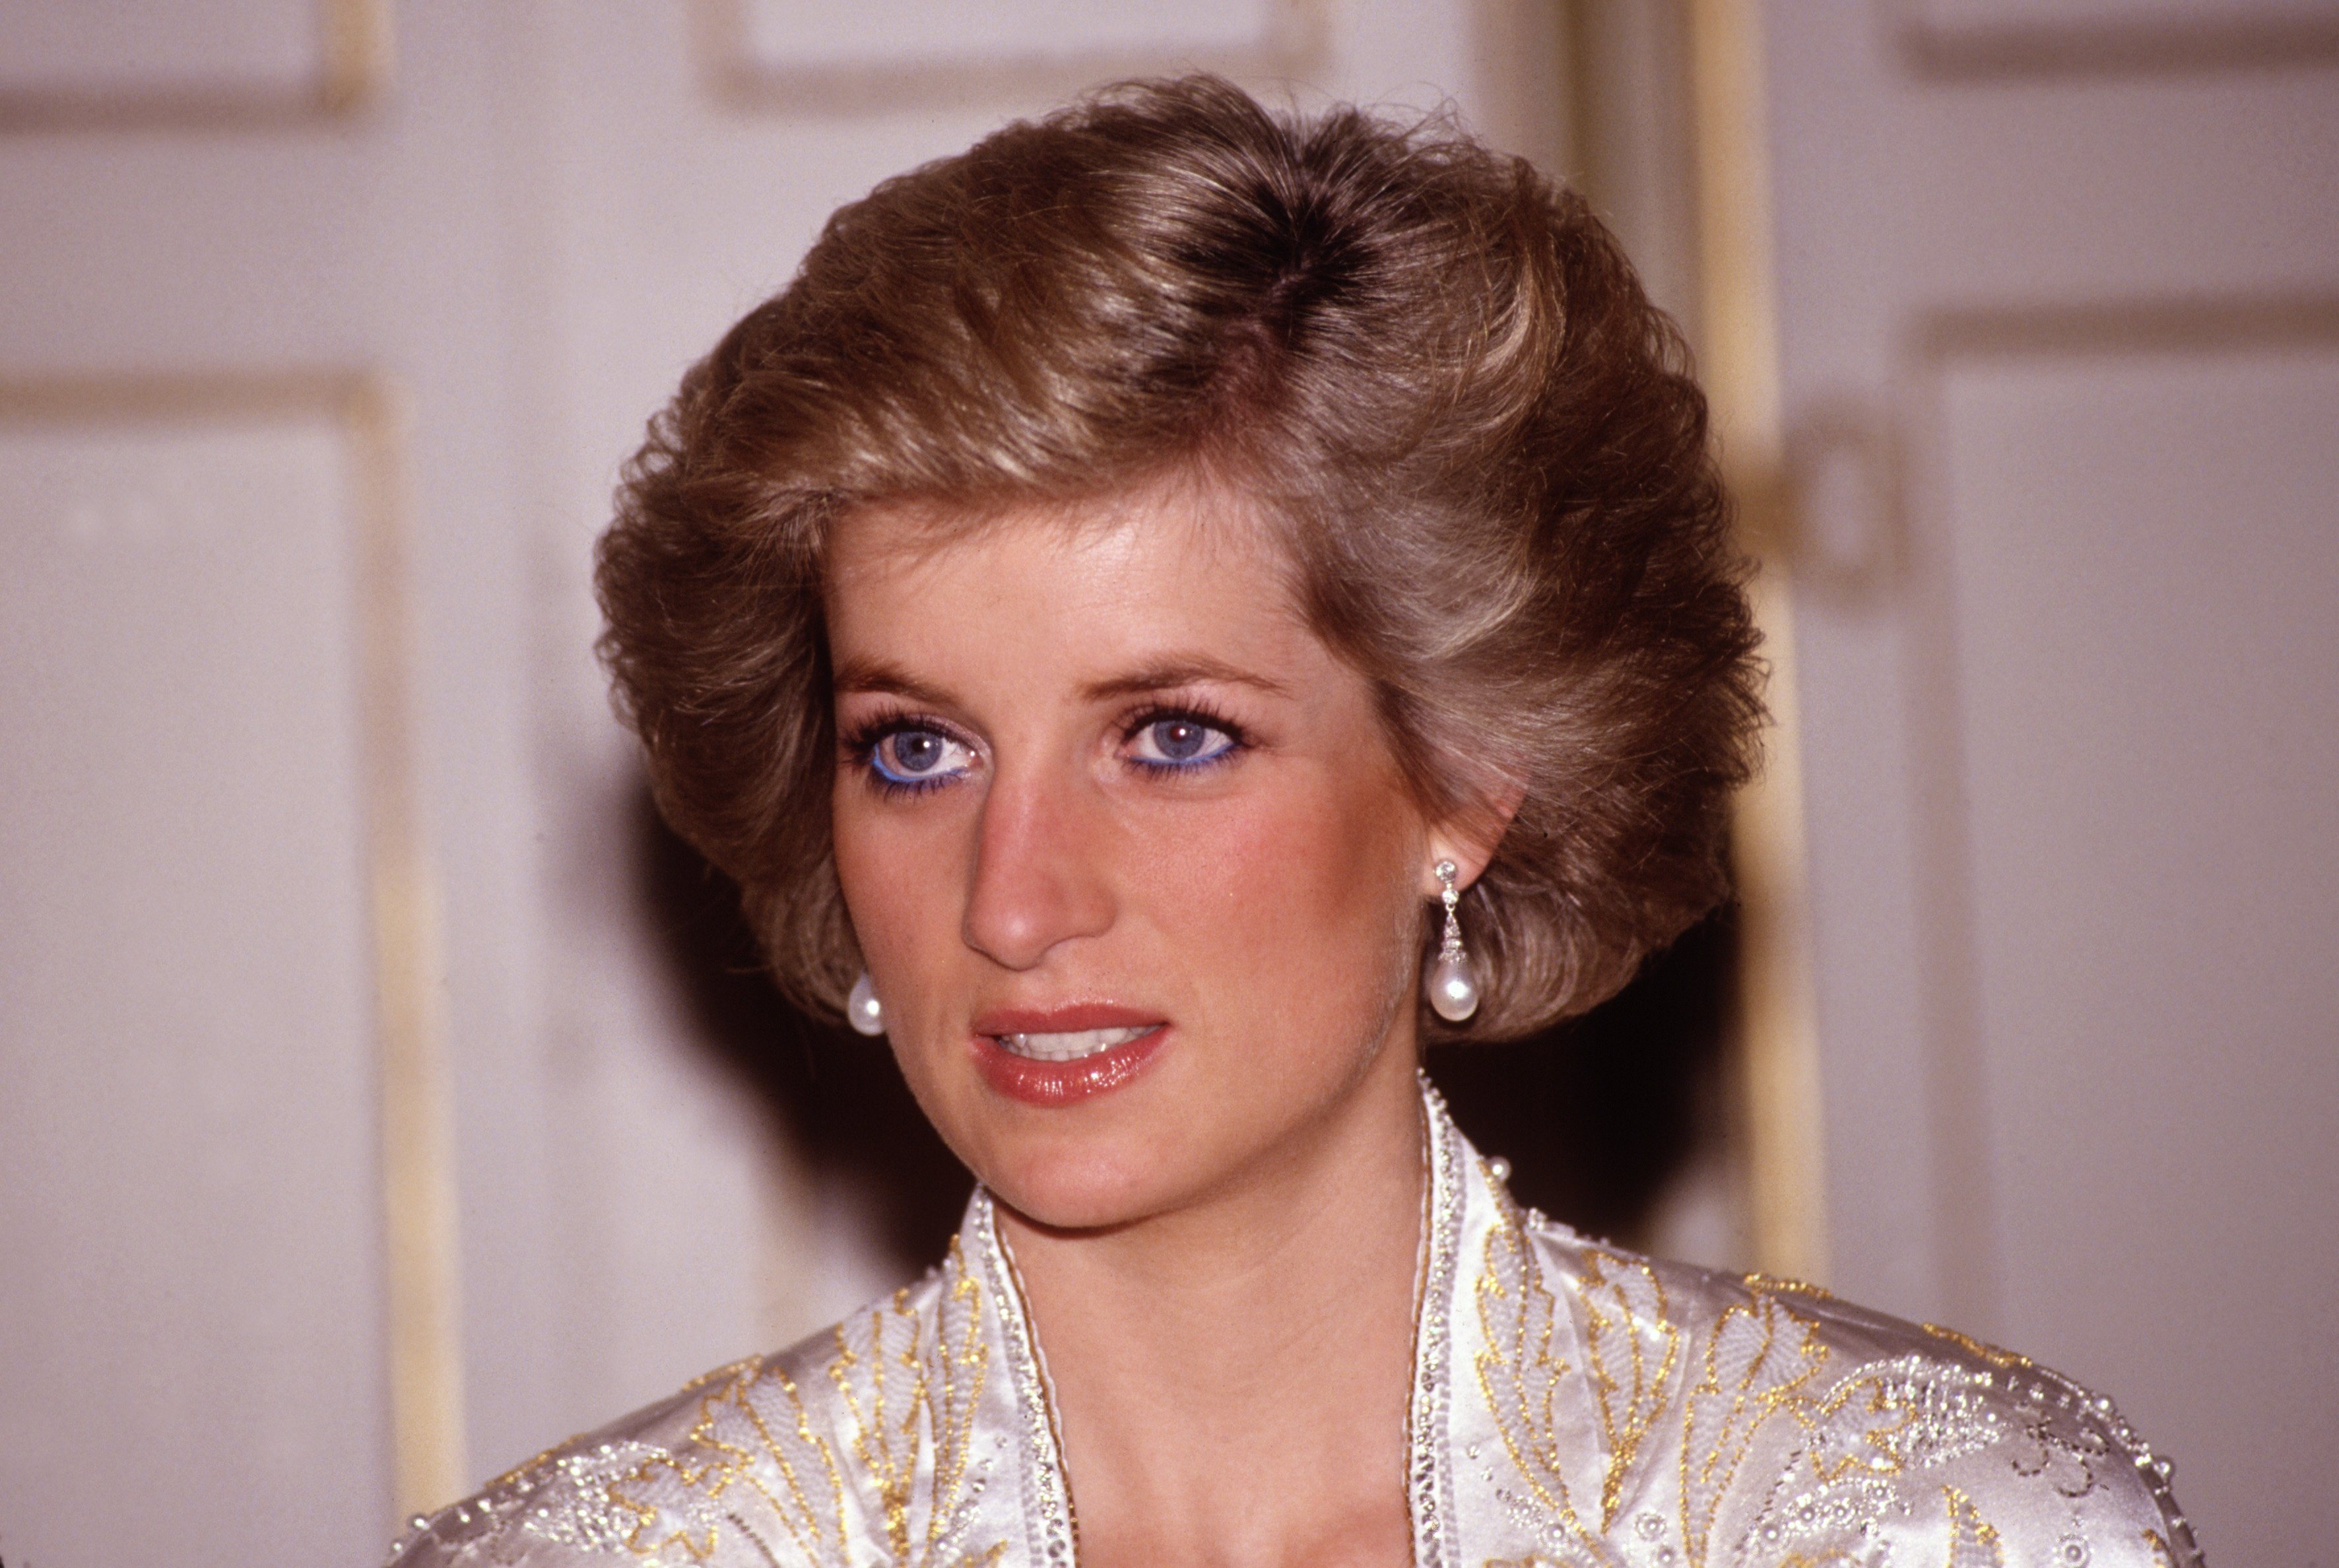 Diana Princess of Wales at a dinner given by President Mitterand in November, 1988 at the Elysee Palace in Paris, France during the Royal Tour of France.Diana wore a dress designed by Victor Edelstein | Source: Getty Images